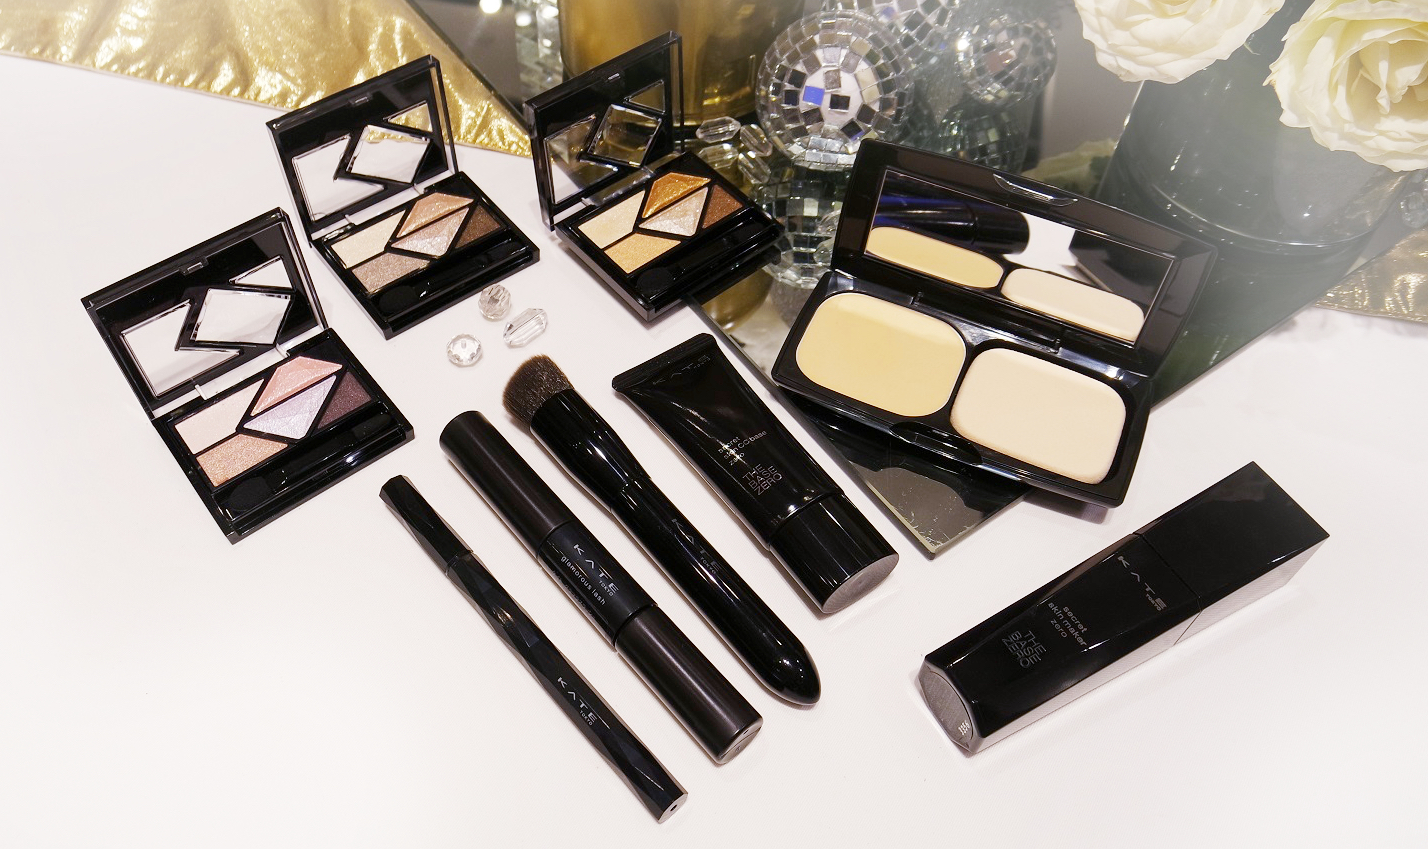 First Look: Kate Tokyo drops a new line with foundation and eye makeup